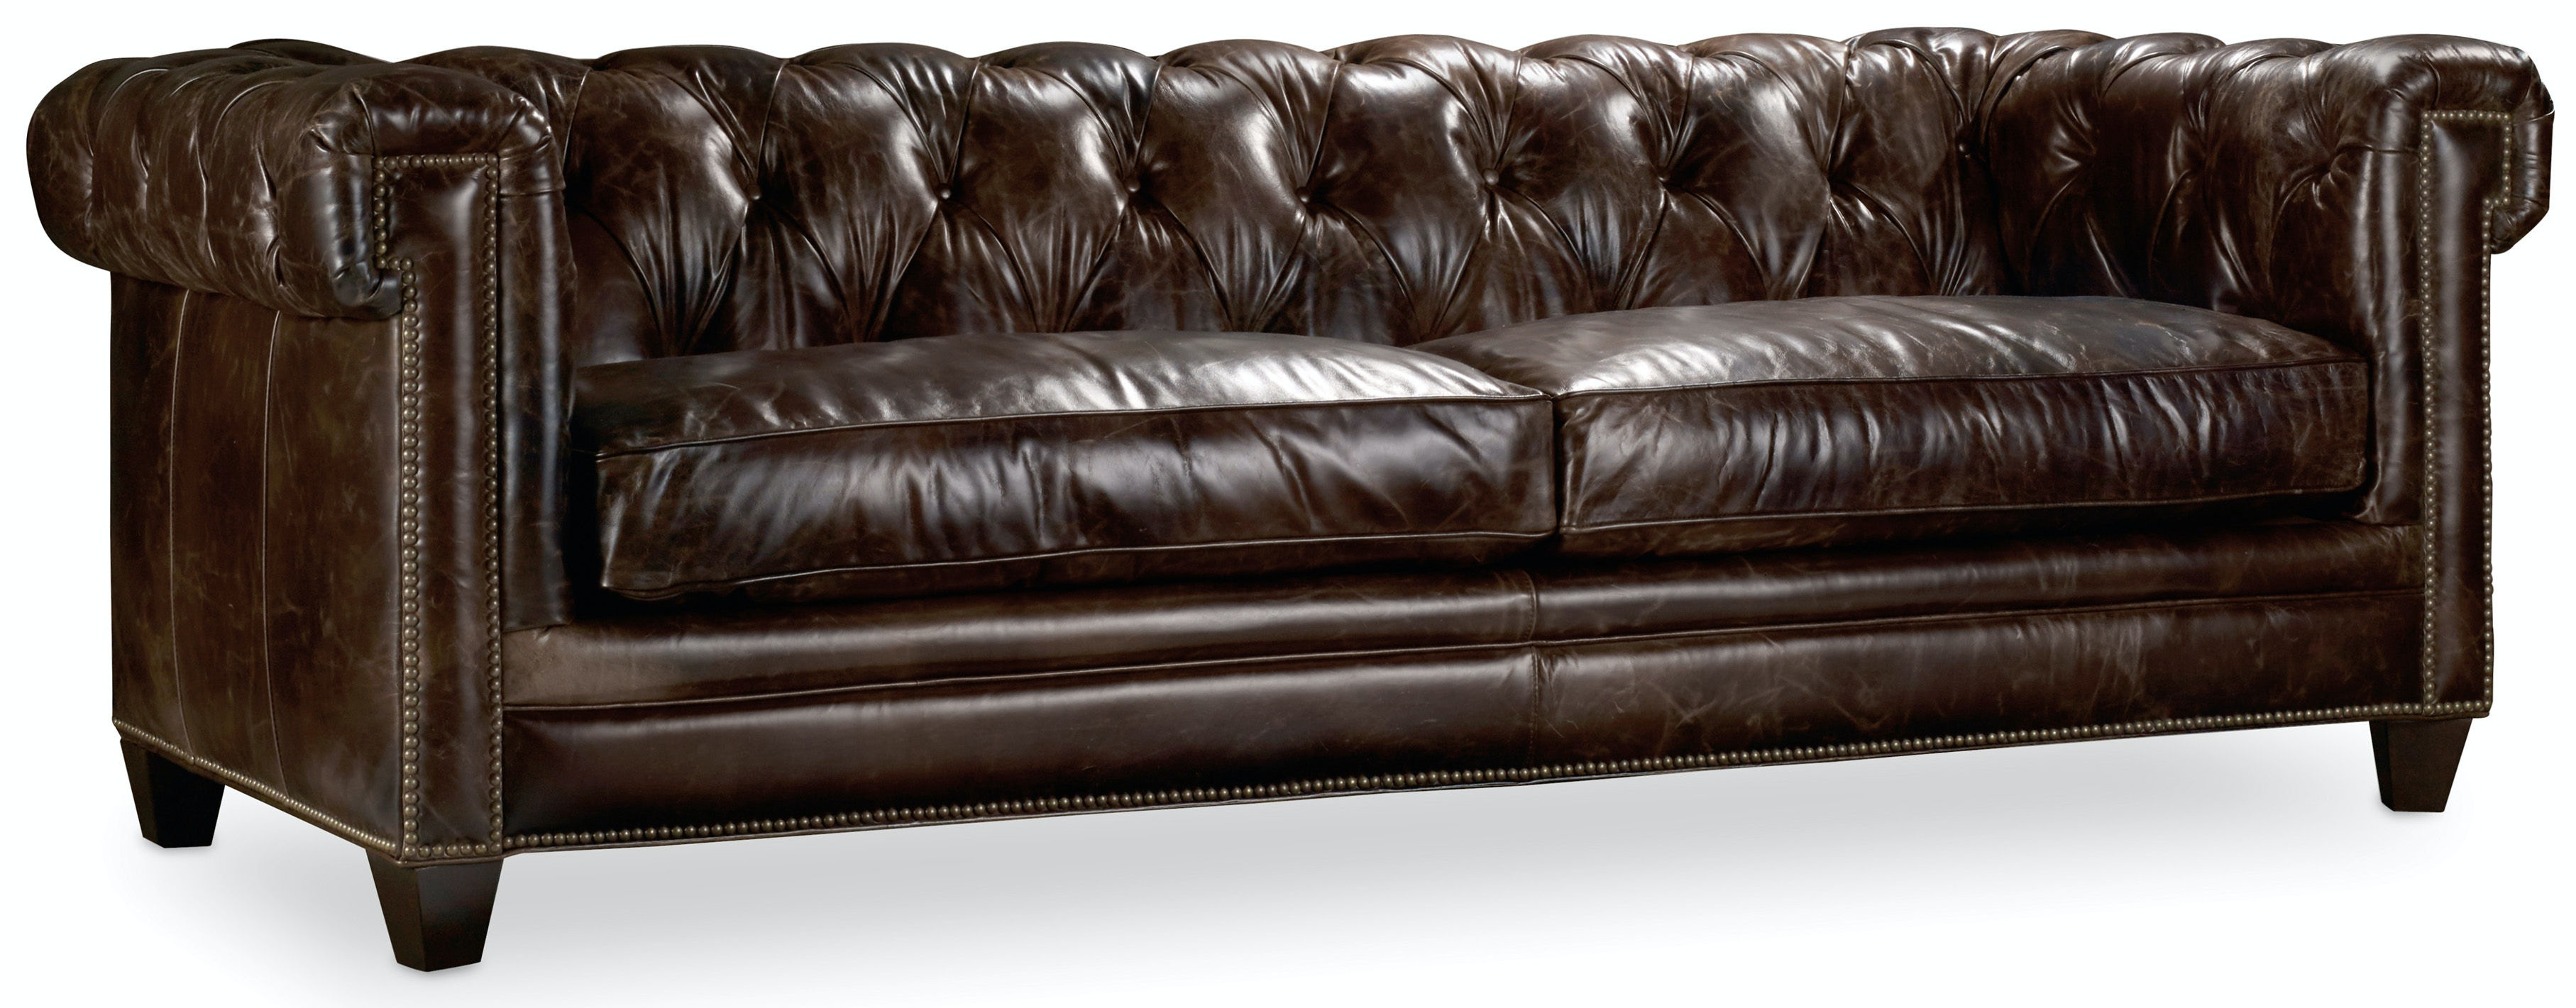 Sofas Chester Simple Seater Chester Field Sofa With Sofas Chester  # Muebles Marieta